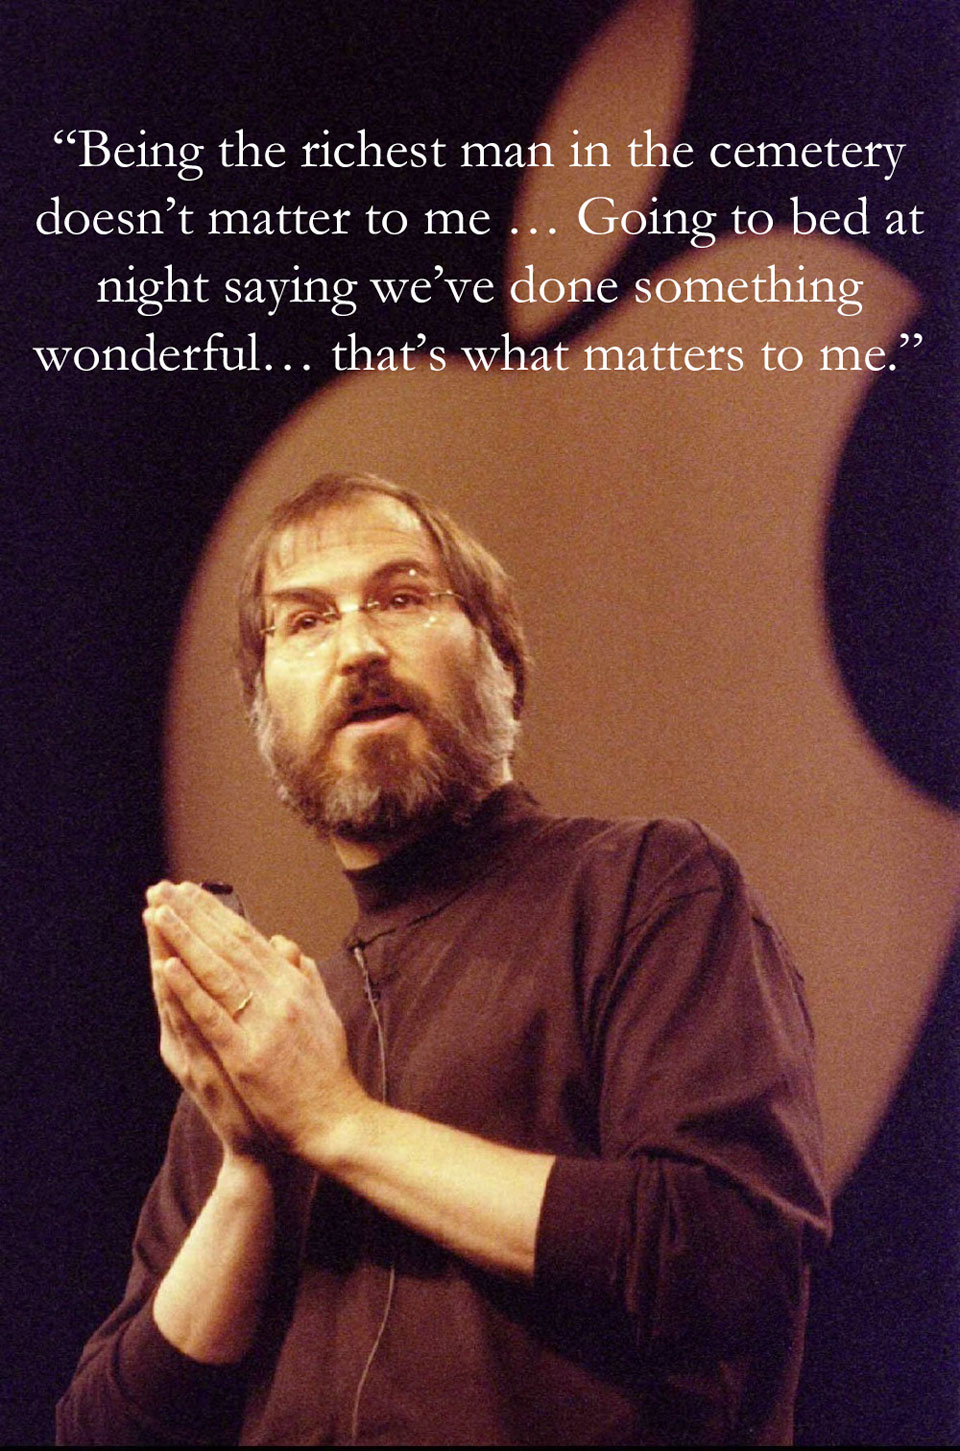 Steve Jobs  Quote (About wonderful RIP richest matters die change the world cemetery)